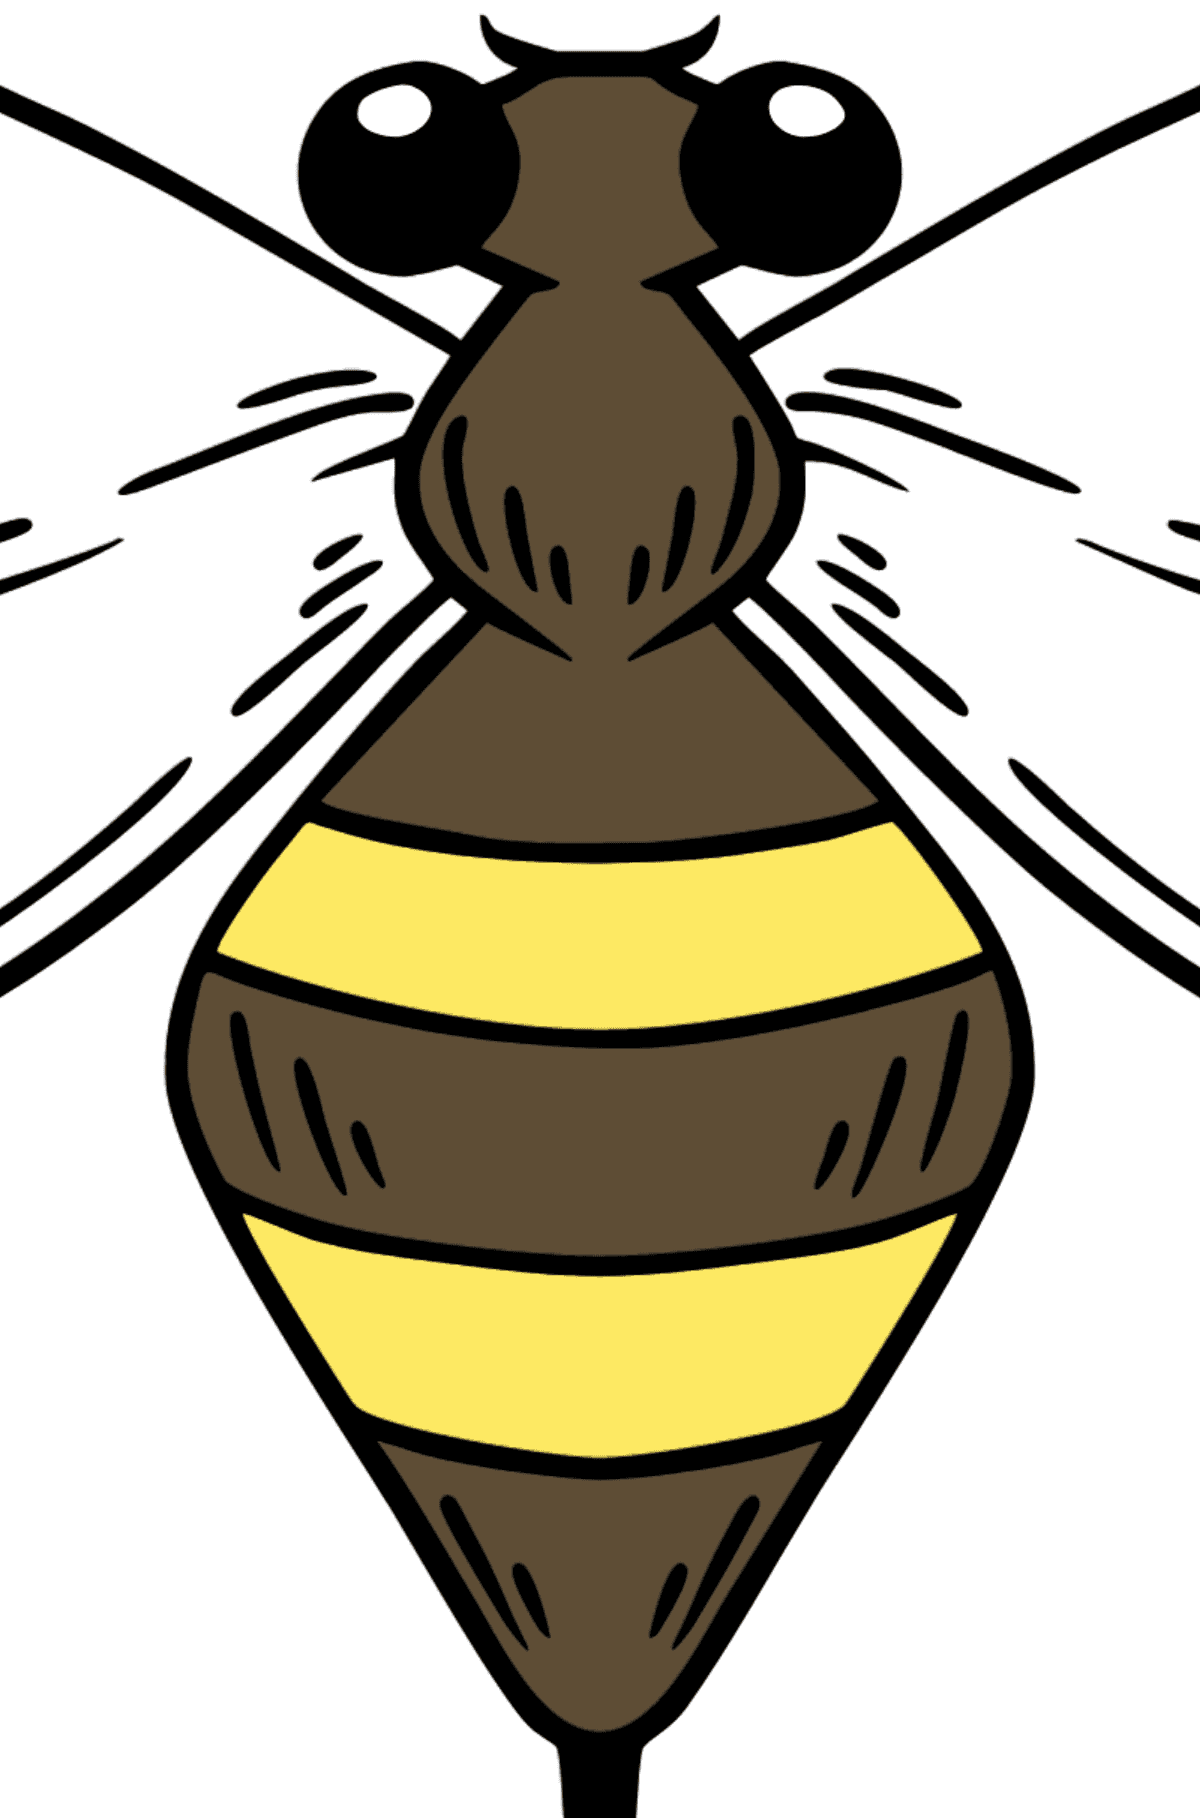 Wasp coloring page - Math Coloring - Division for Kids